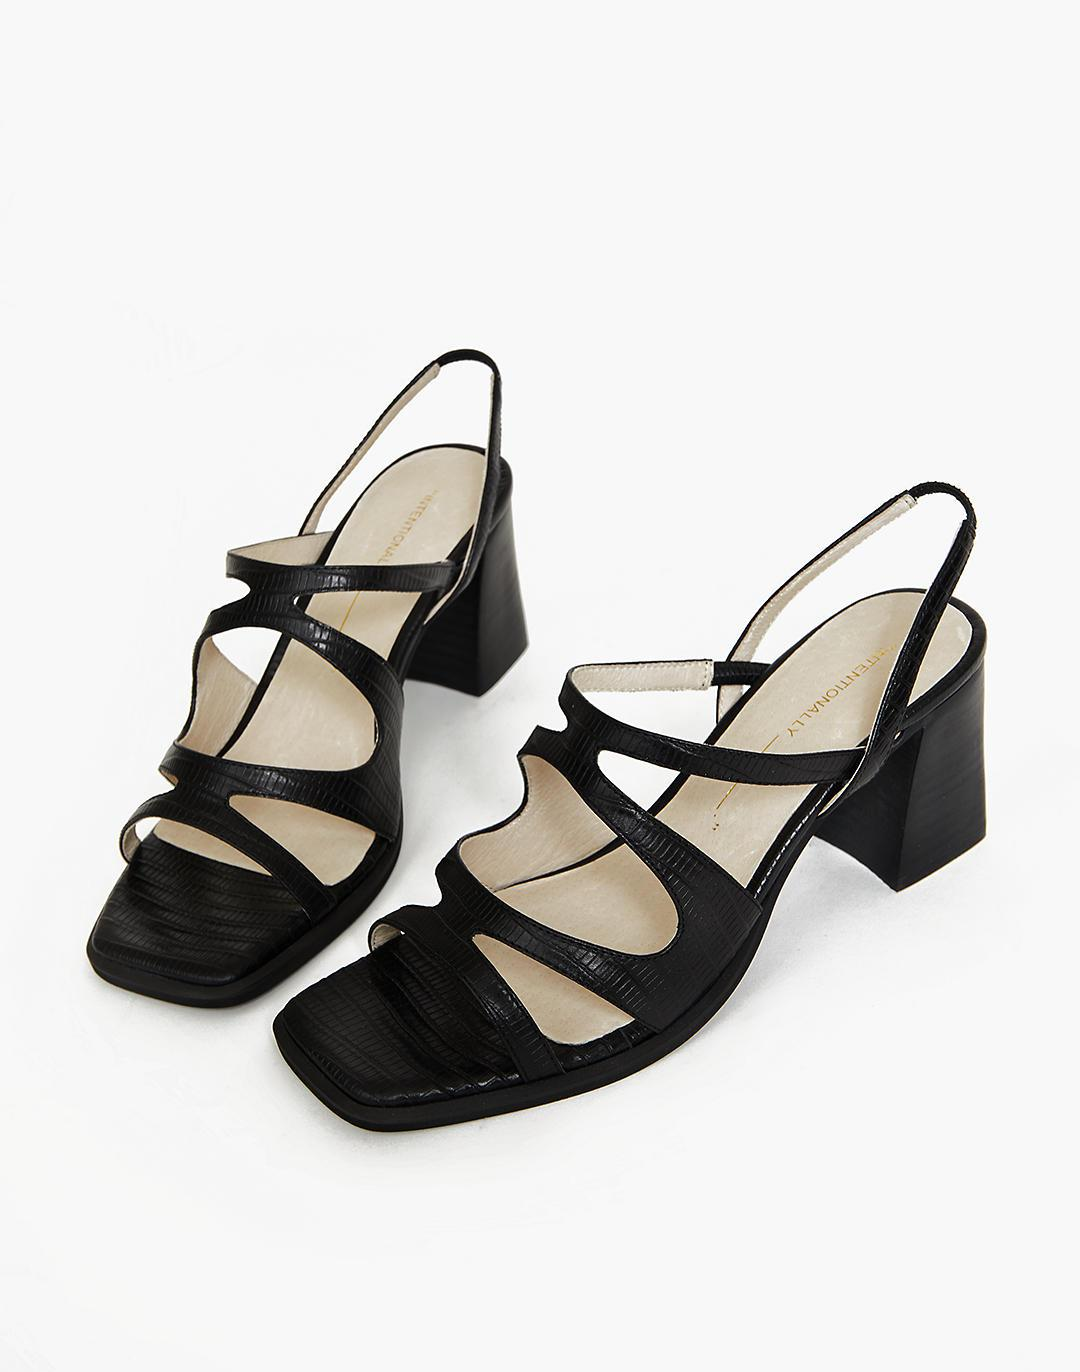 INTENTIONALLY BLANK If Black Sandals